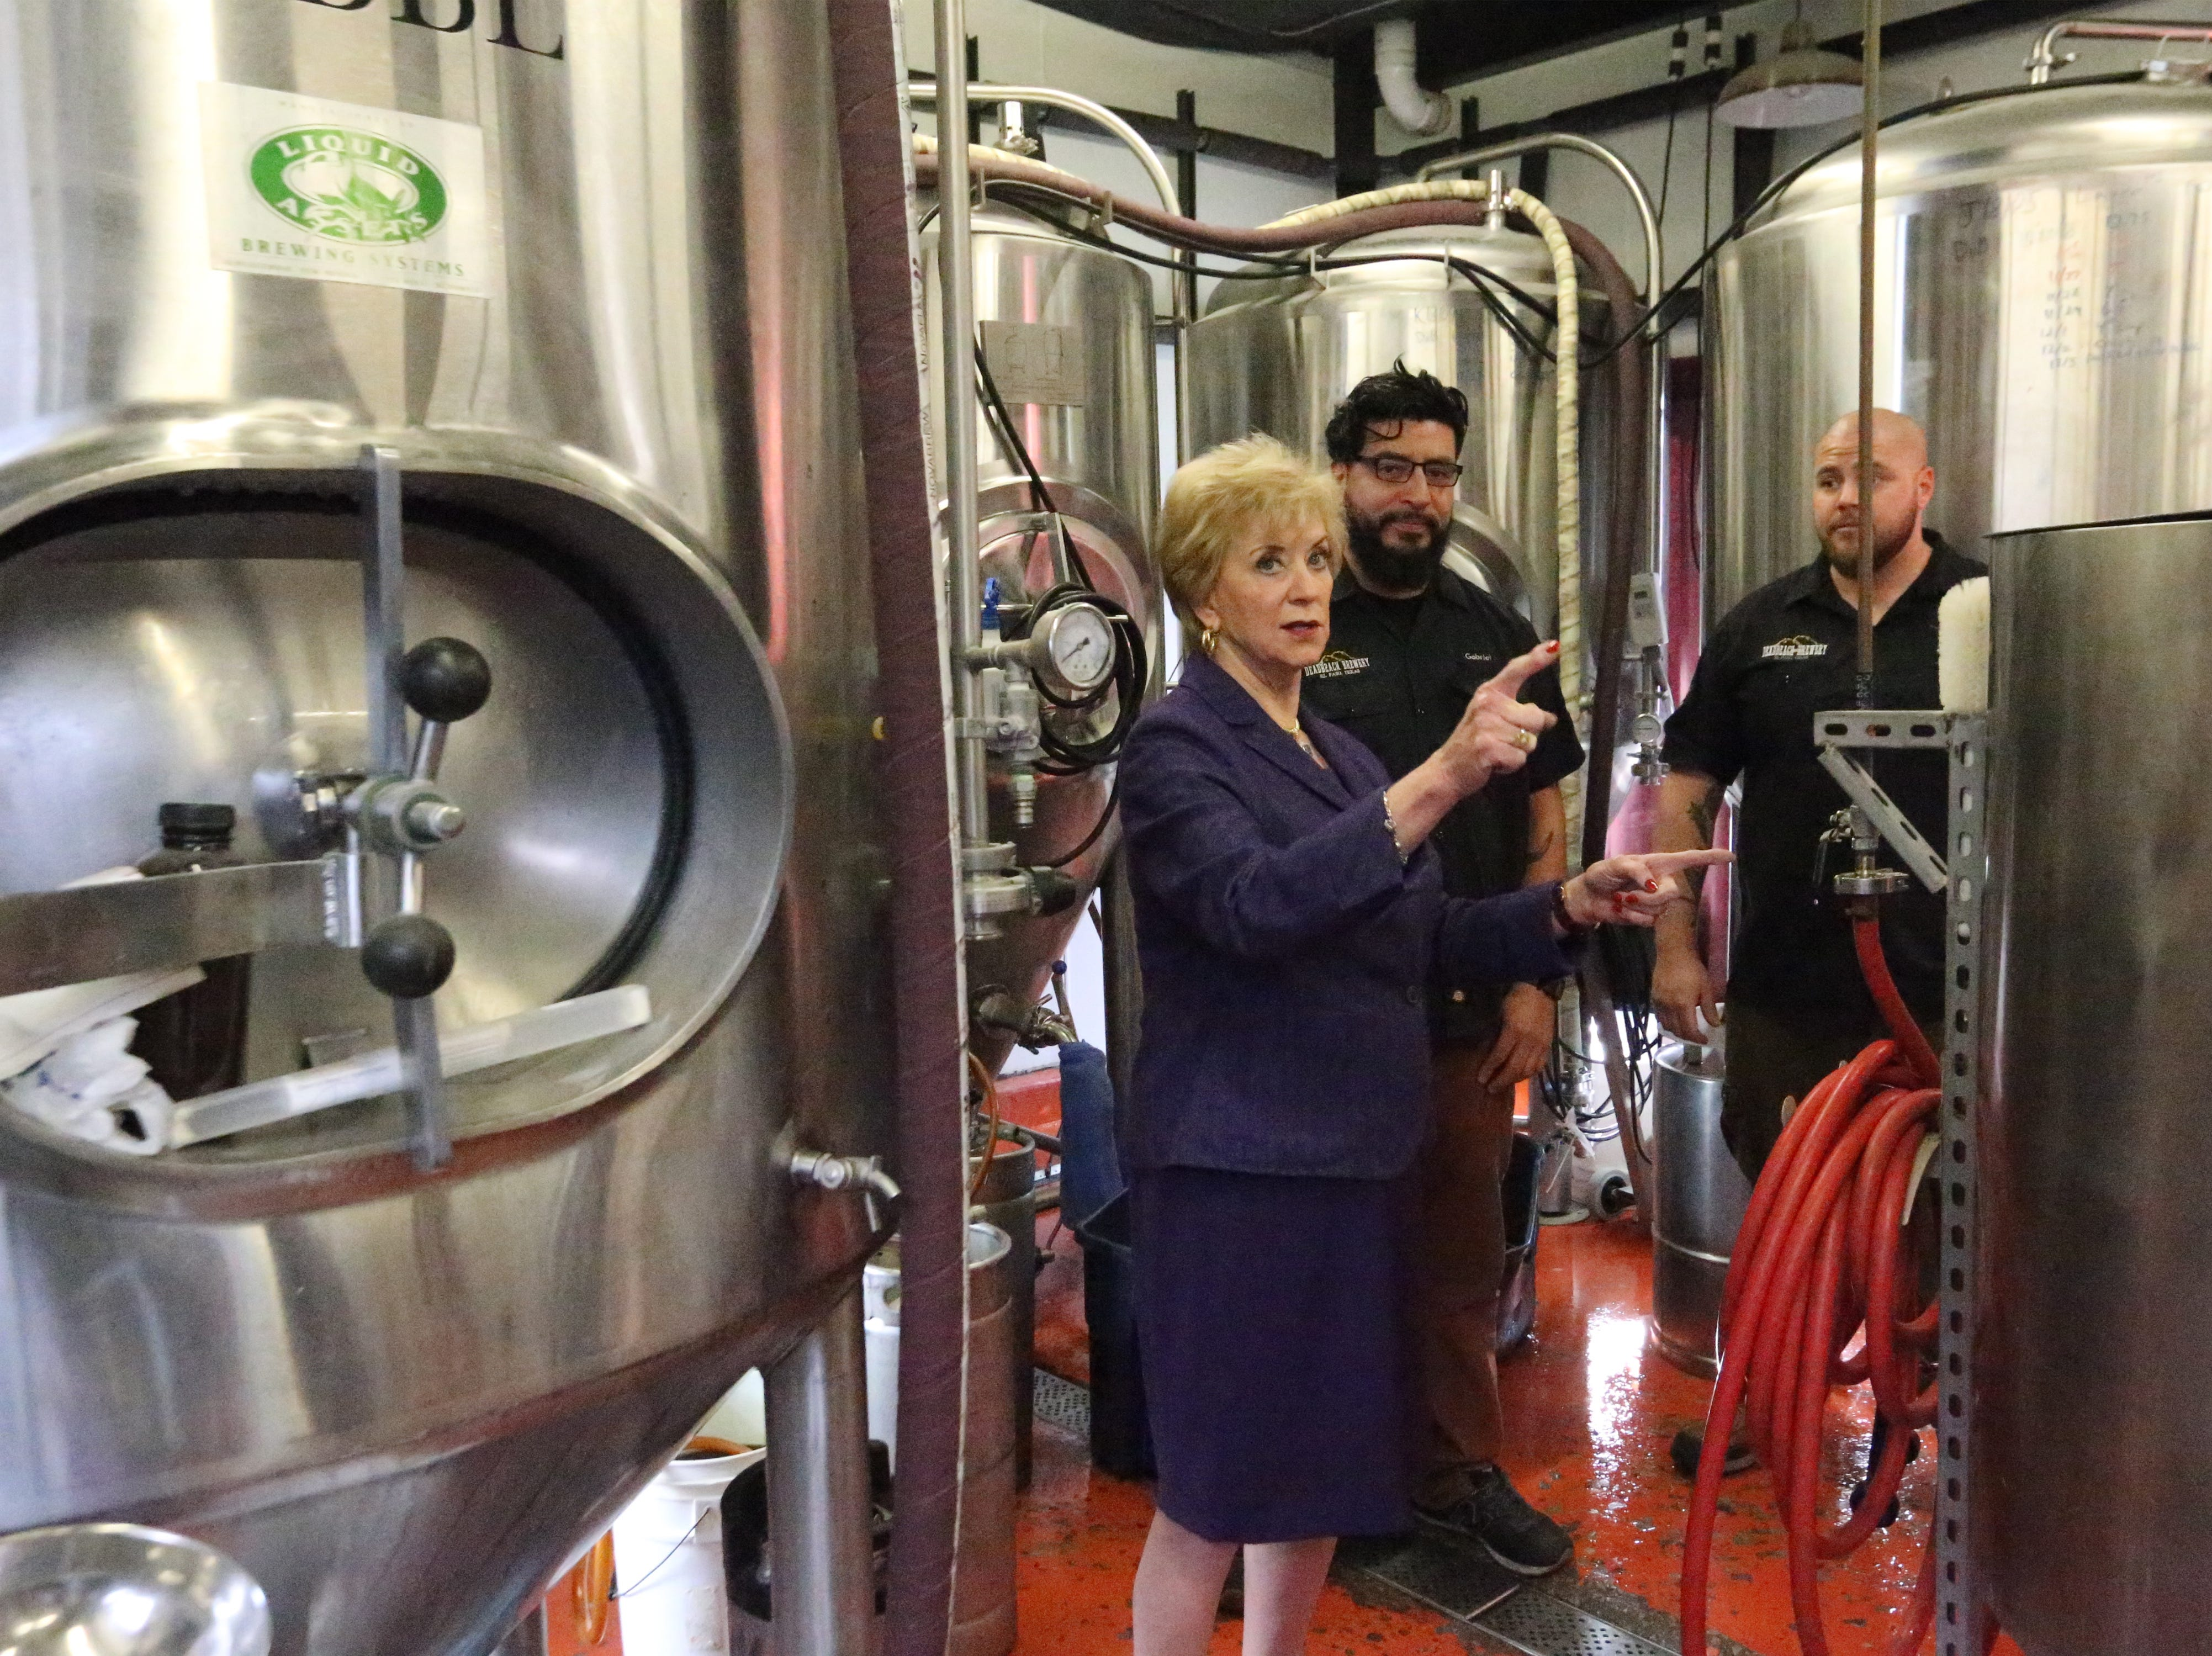 U.S. Small Business Administration director Linda McMahon, center, takes a tour of DeadBeach Brewery at 406 Durango Street during a visit to El Paso Tuesday.